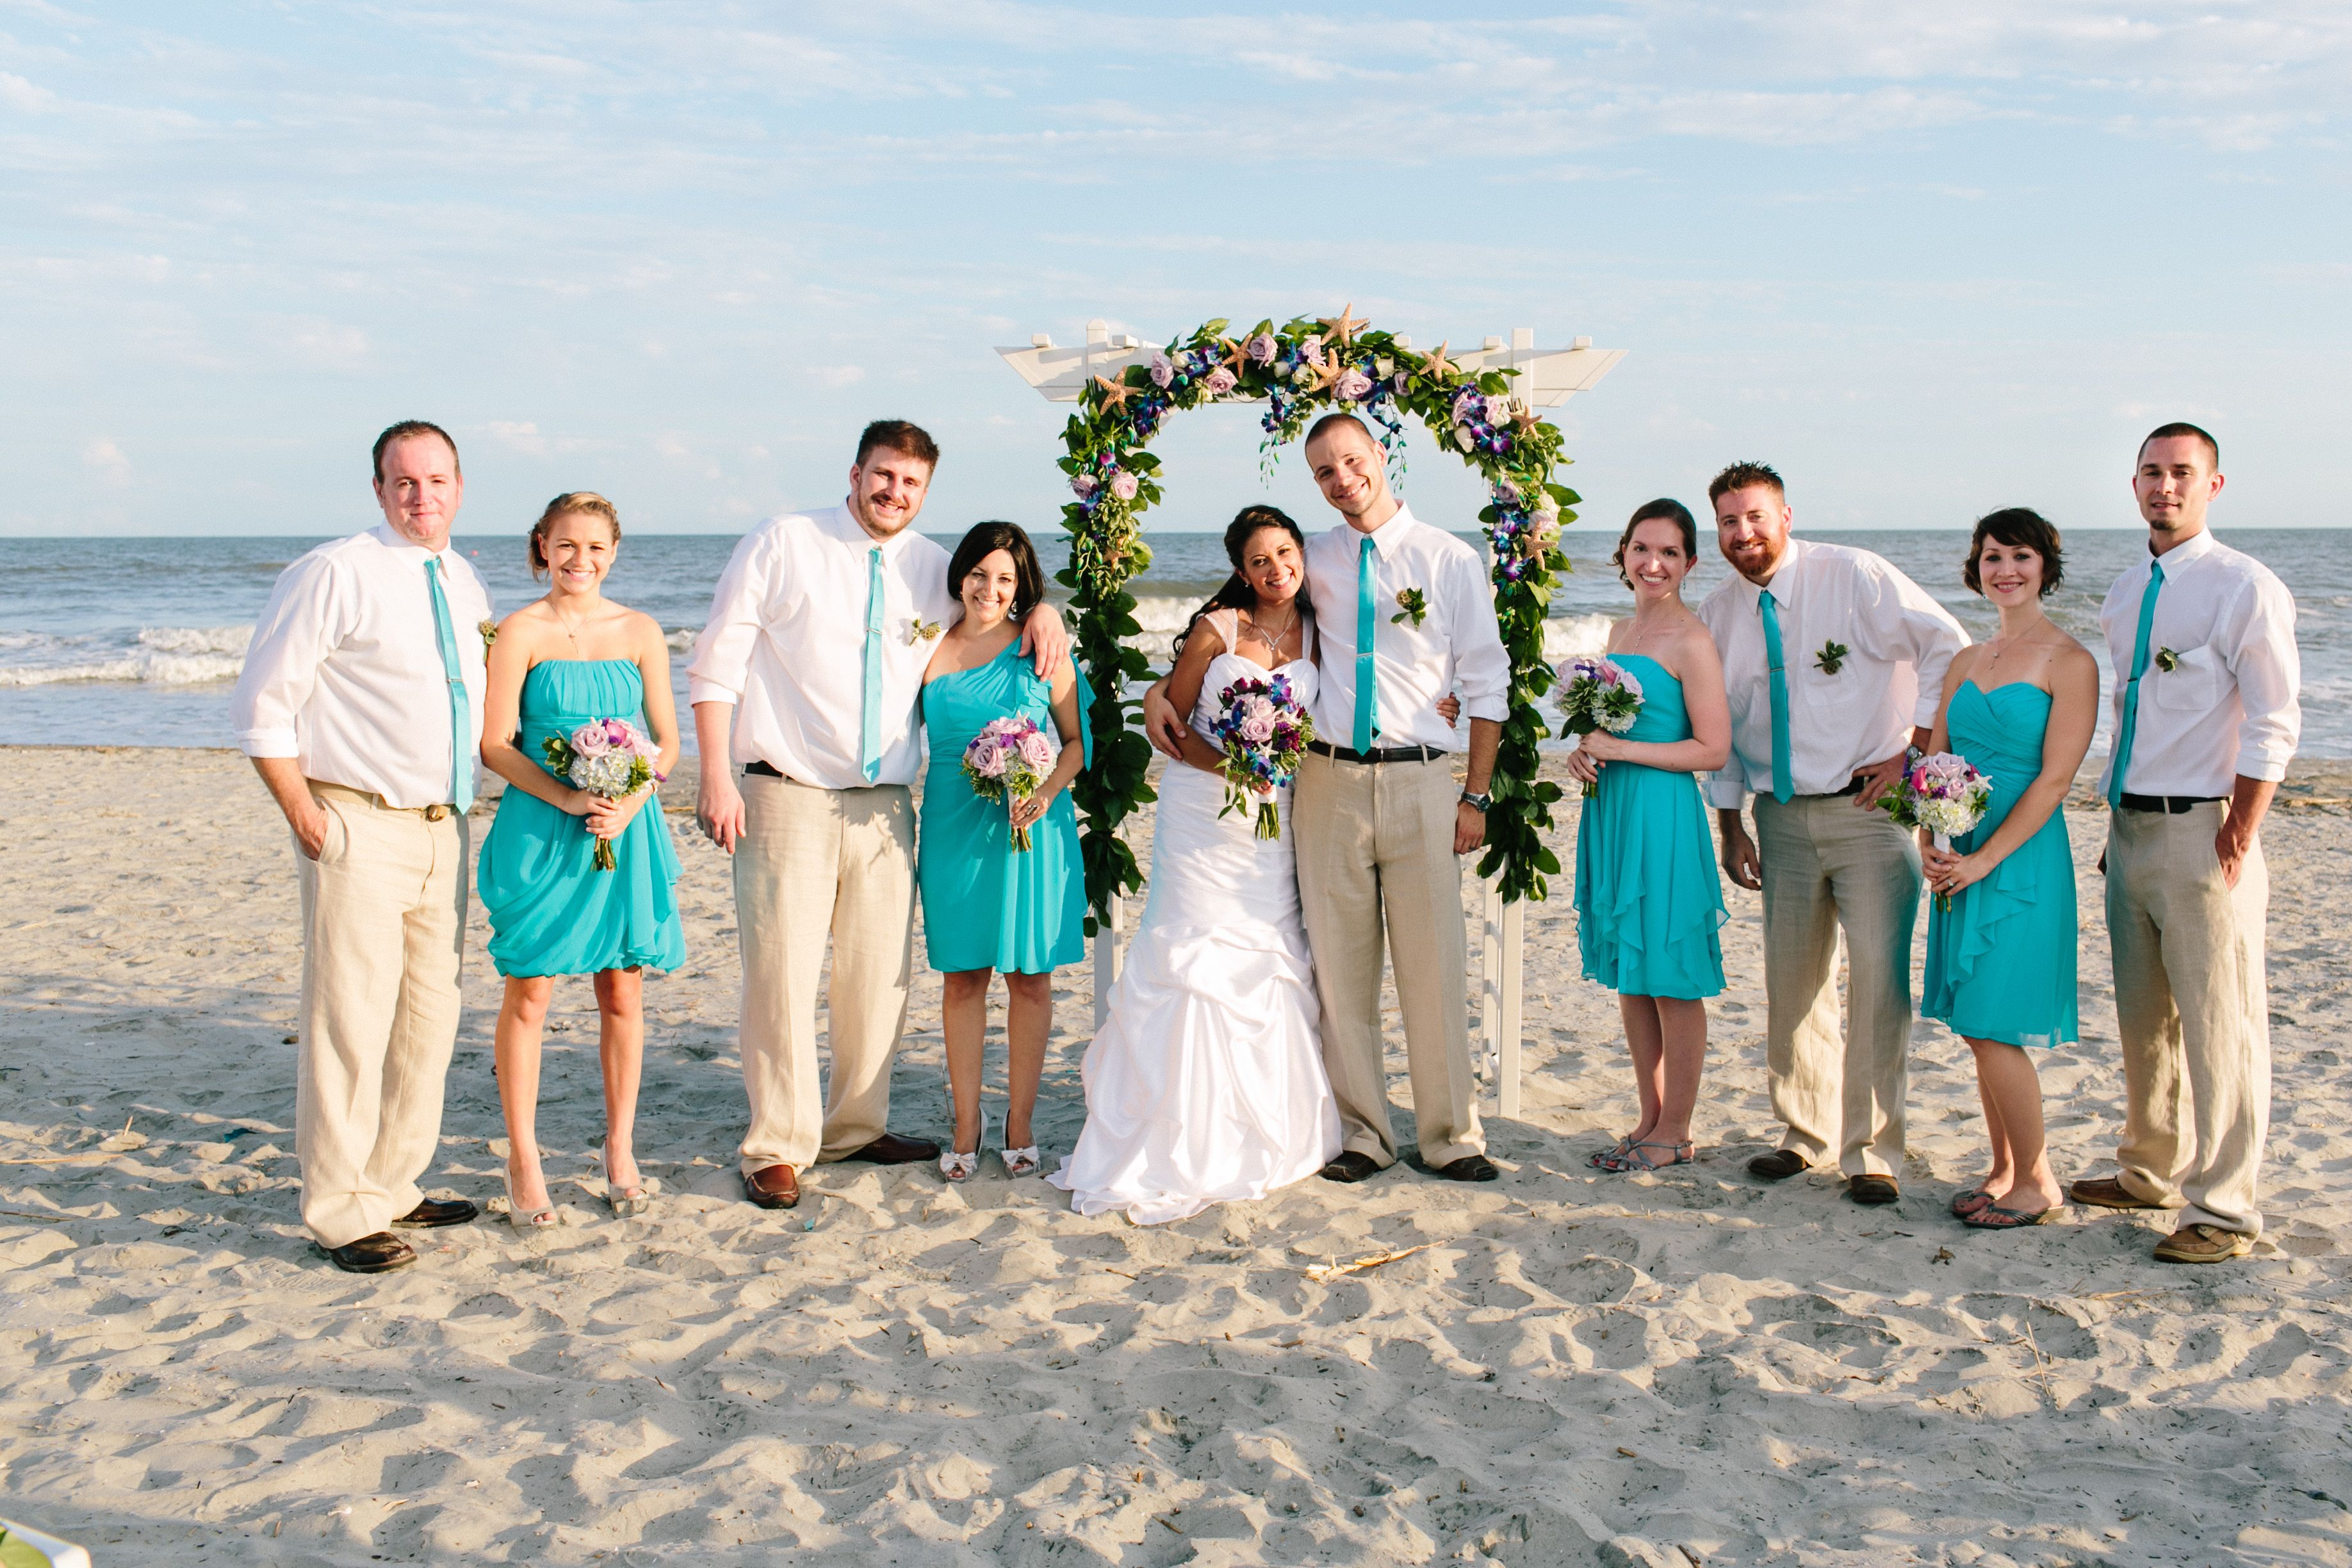 Teal beach wedding party--THESE ARE THE COLORS TEAL AND PINK FLOWERS ...